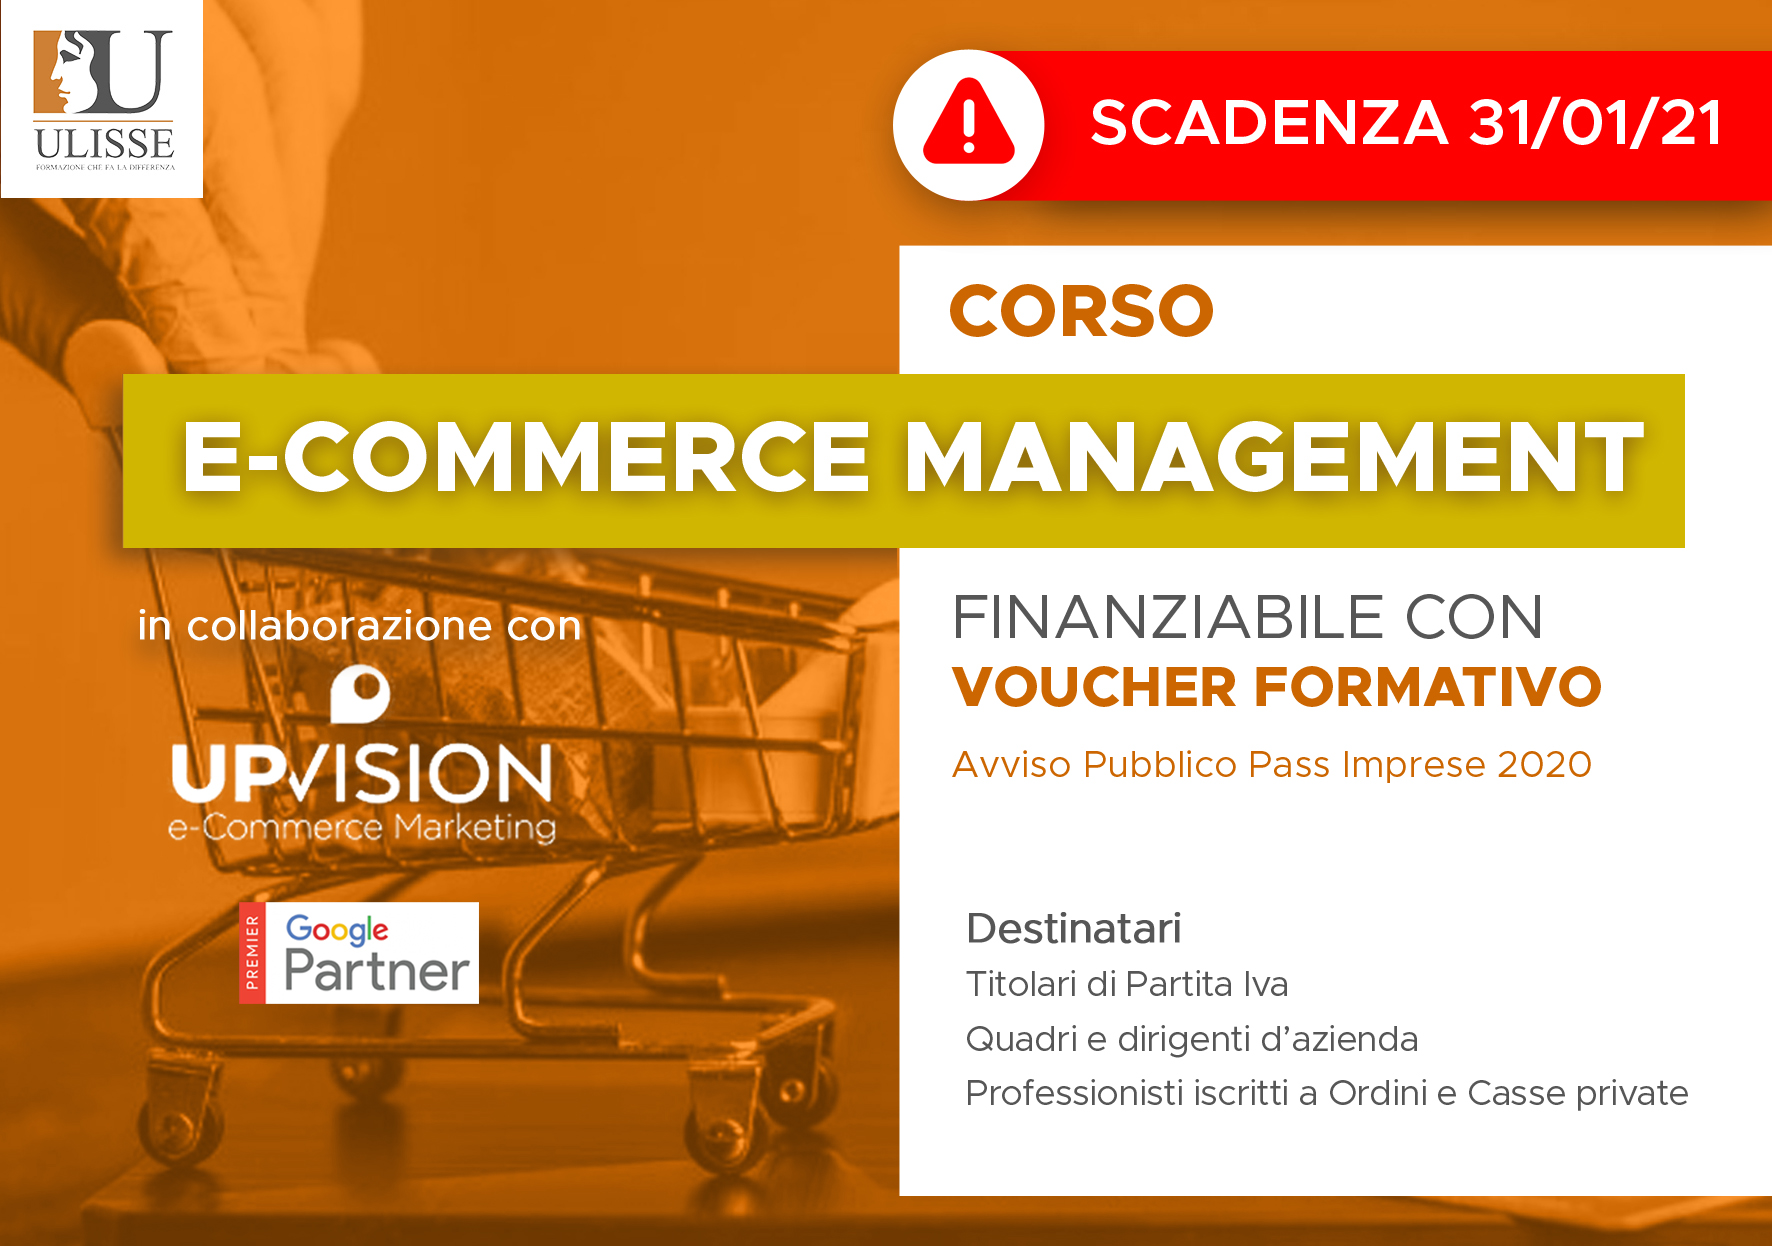 CORSO SU E-COMMERCE MANAGEMENT